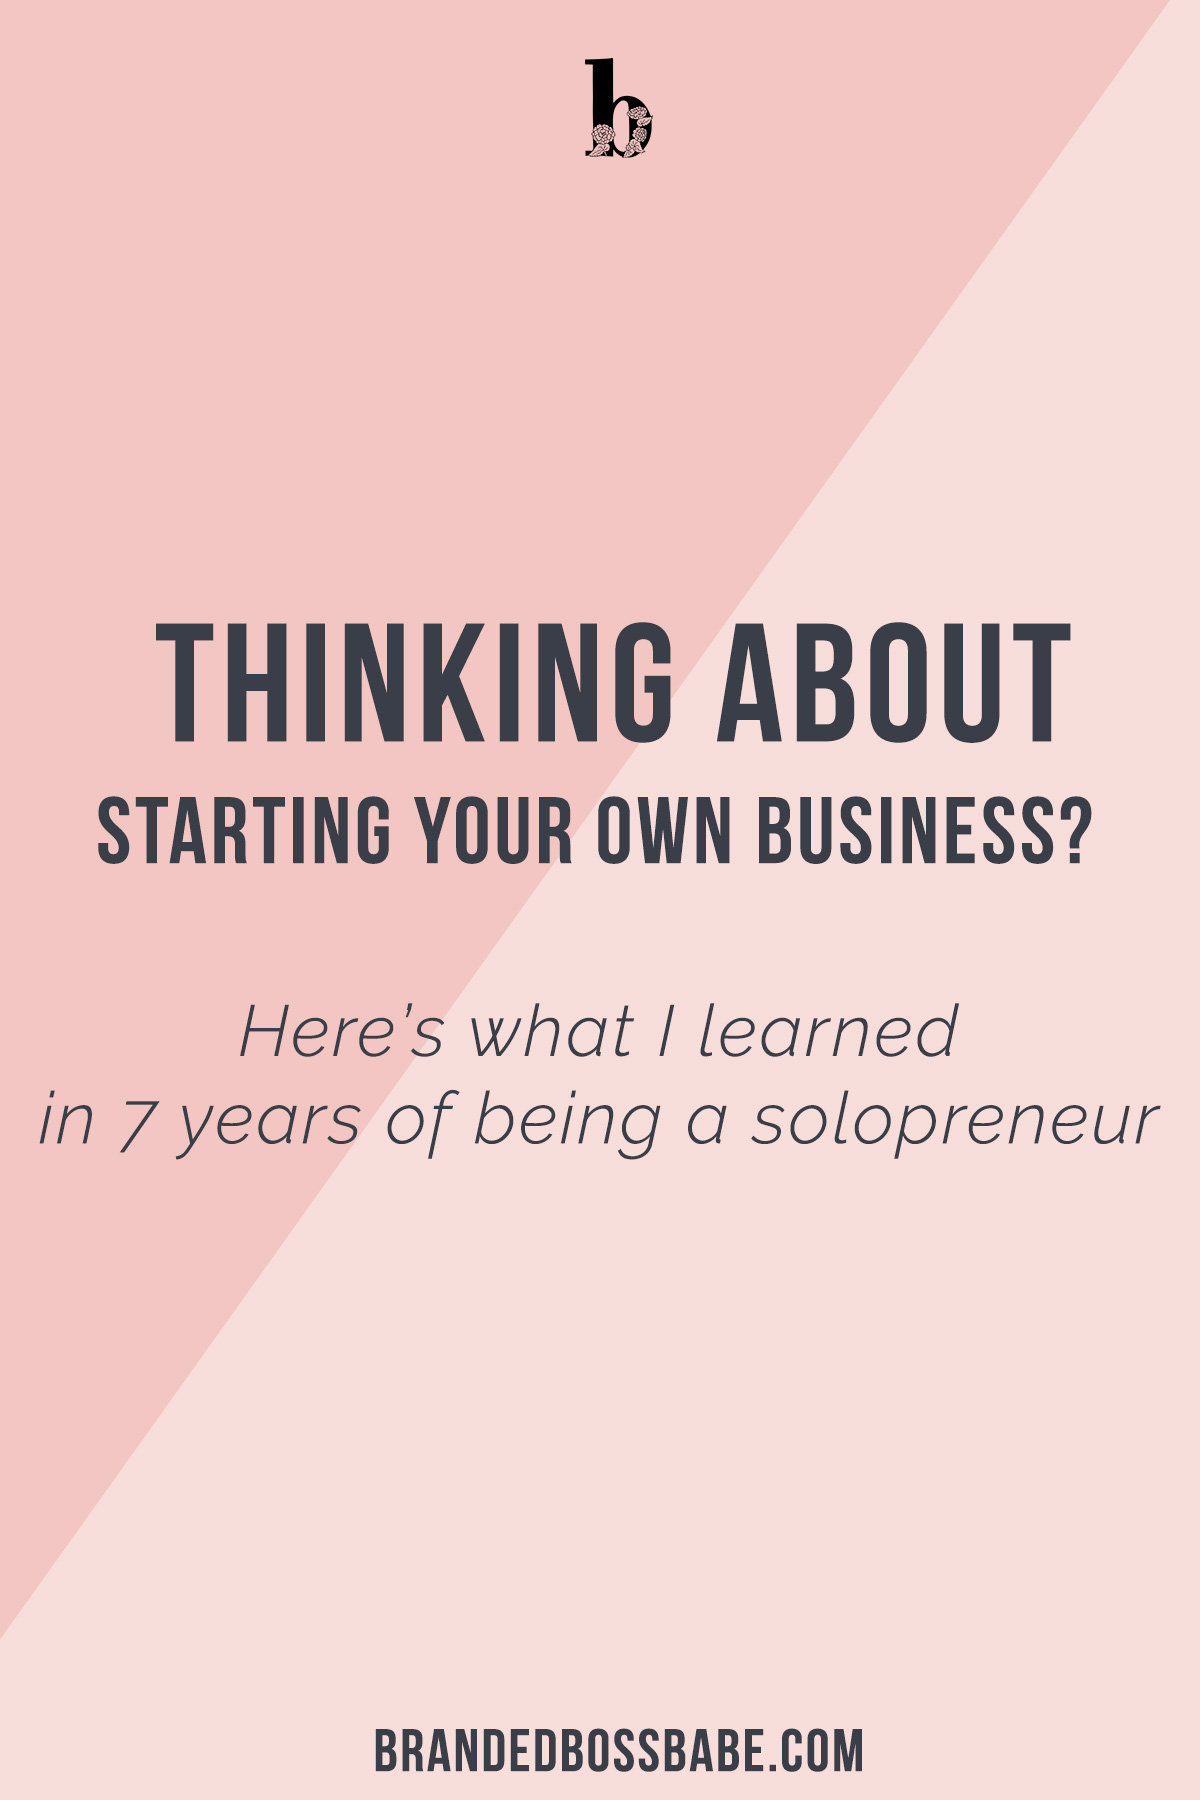 Thinking about starting your own business? Here's what I learned in 7 years of being a solopreneur. #startingyourownbusiness #entrepreneurship #brandedbossbabe